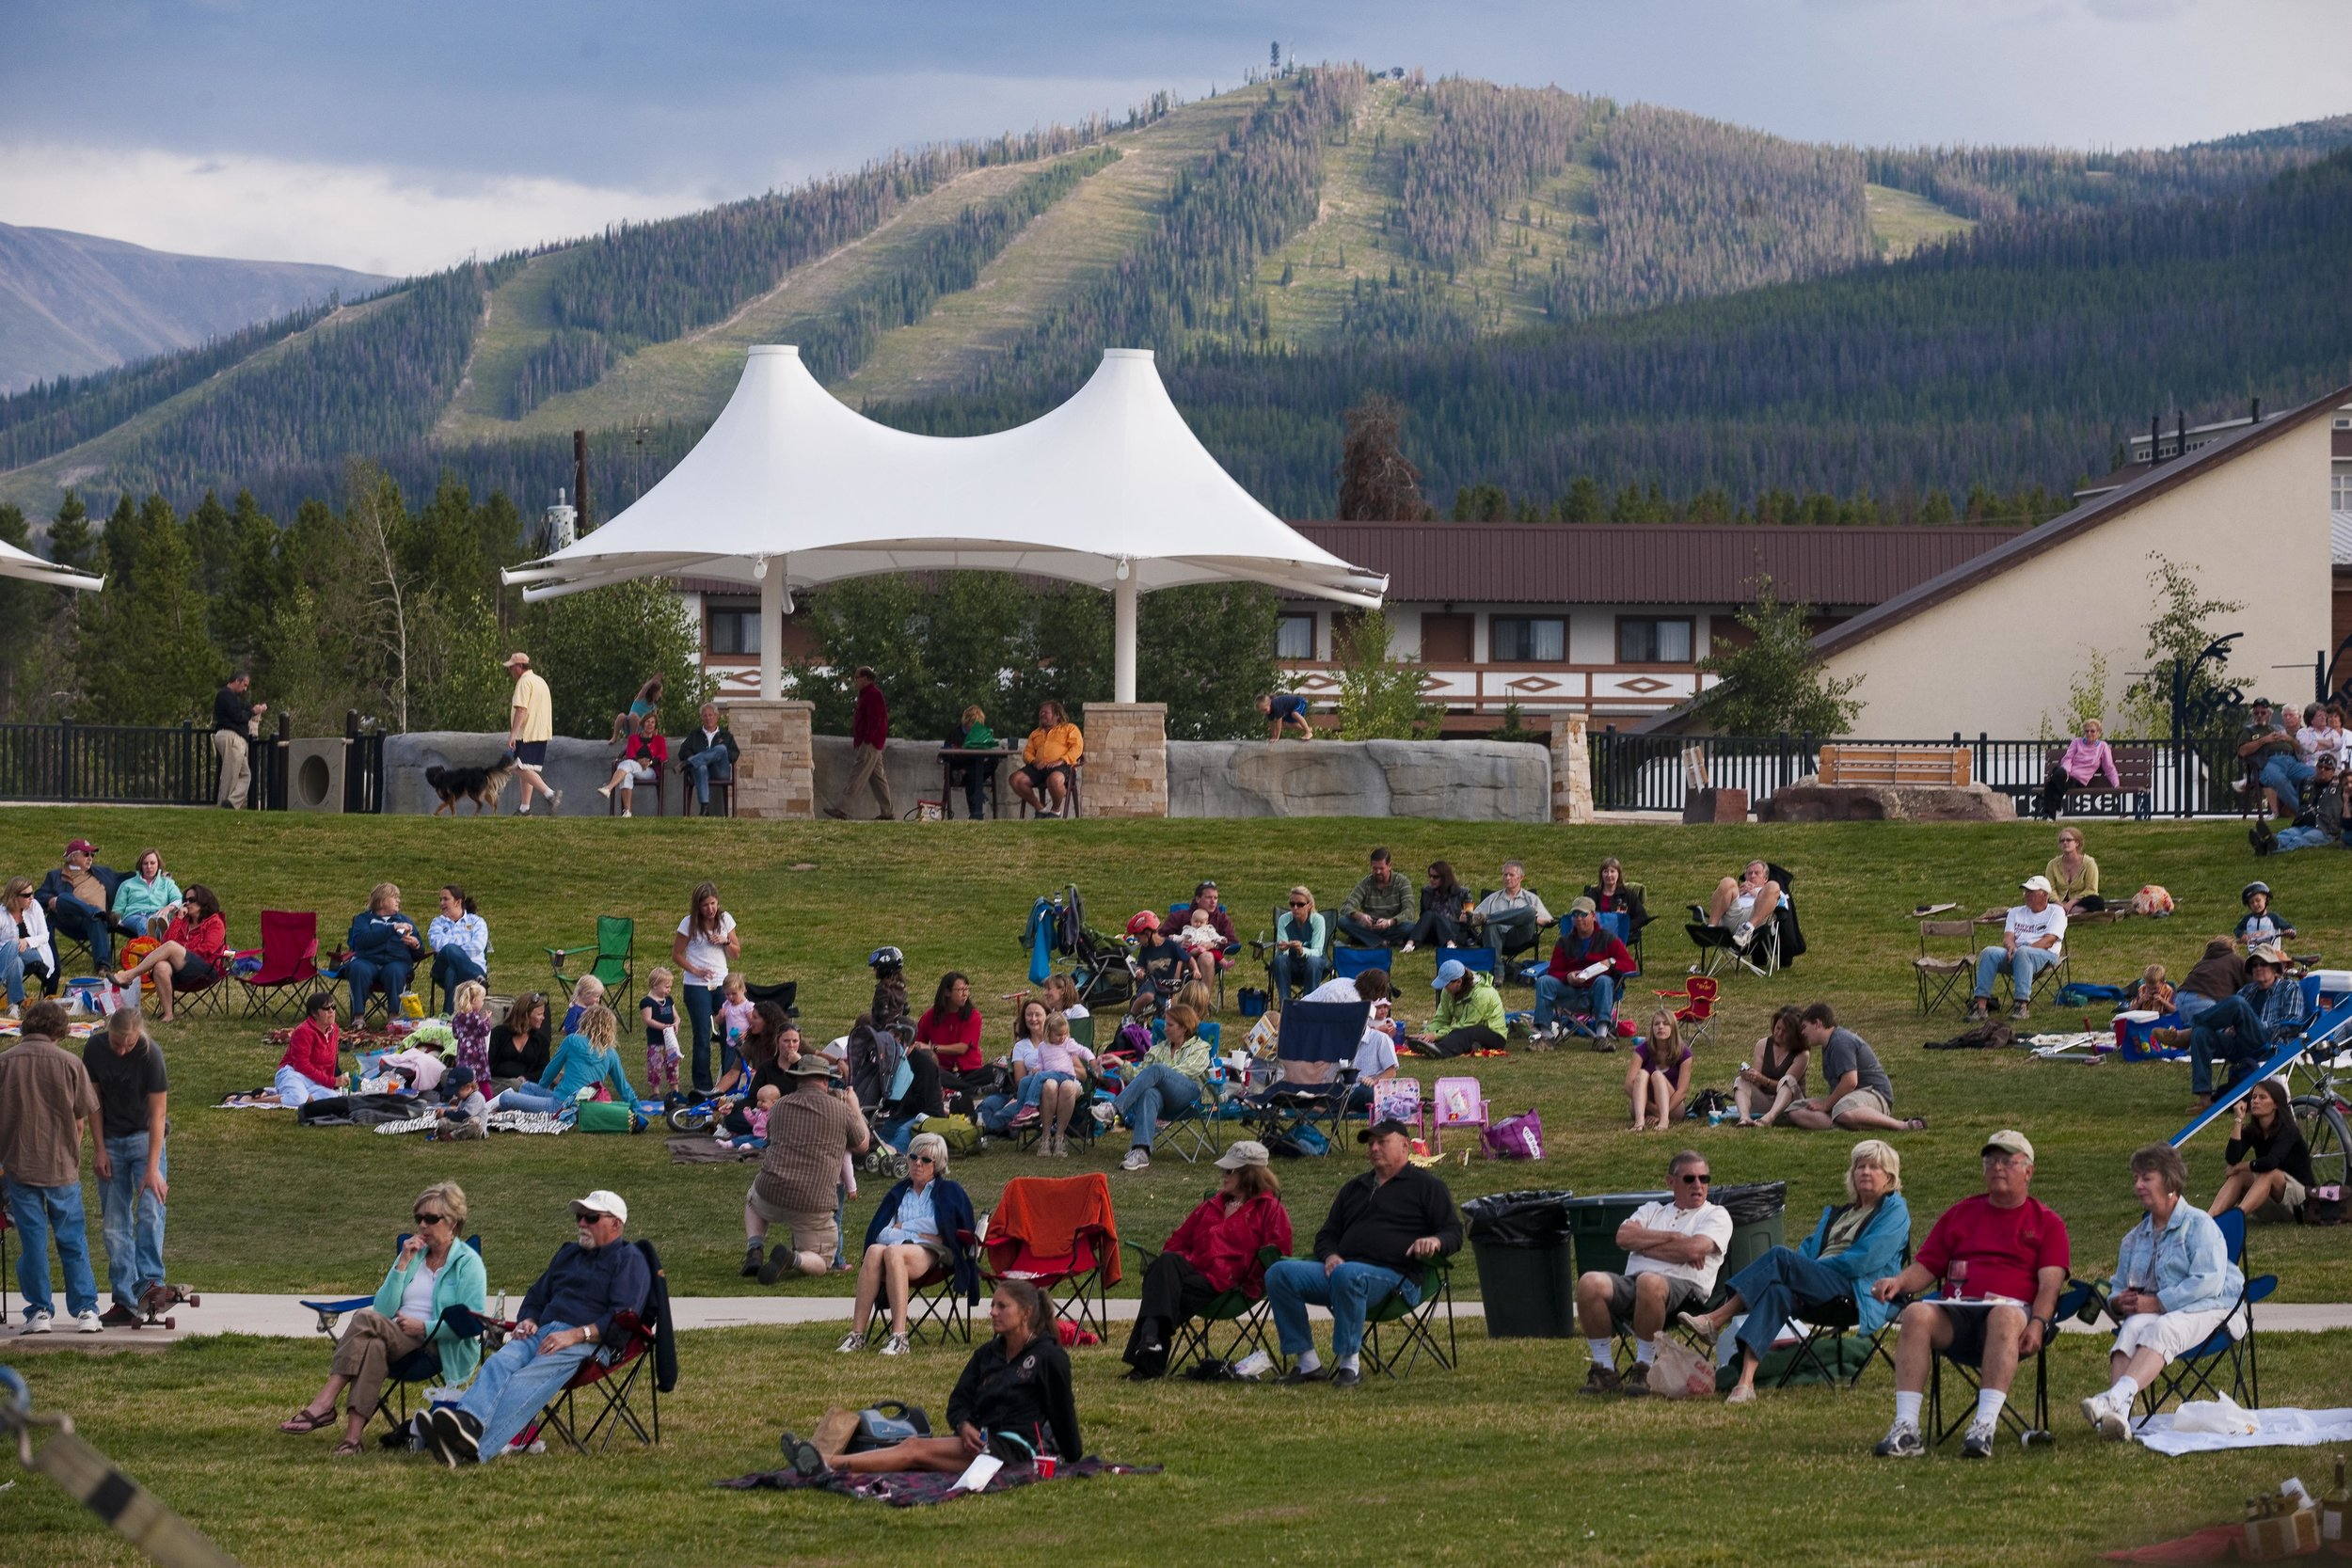 People sitting watching on grass lawn amphitheater concert venue for music festival in winter park Colorado with mountains in back